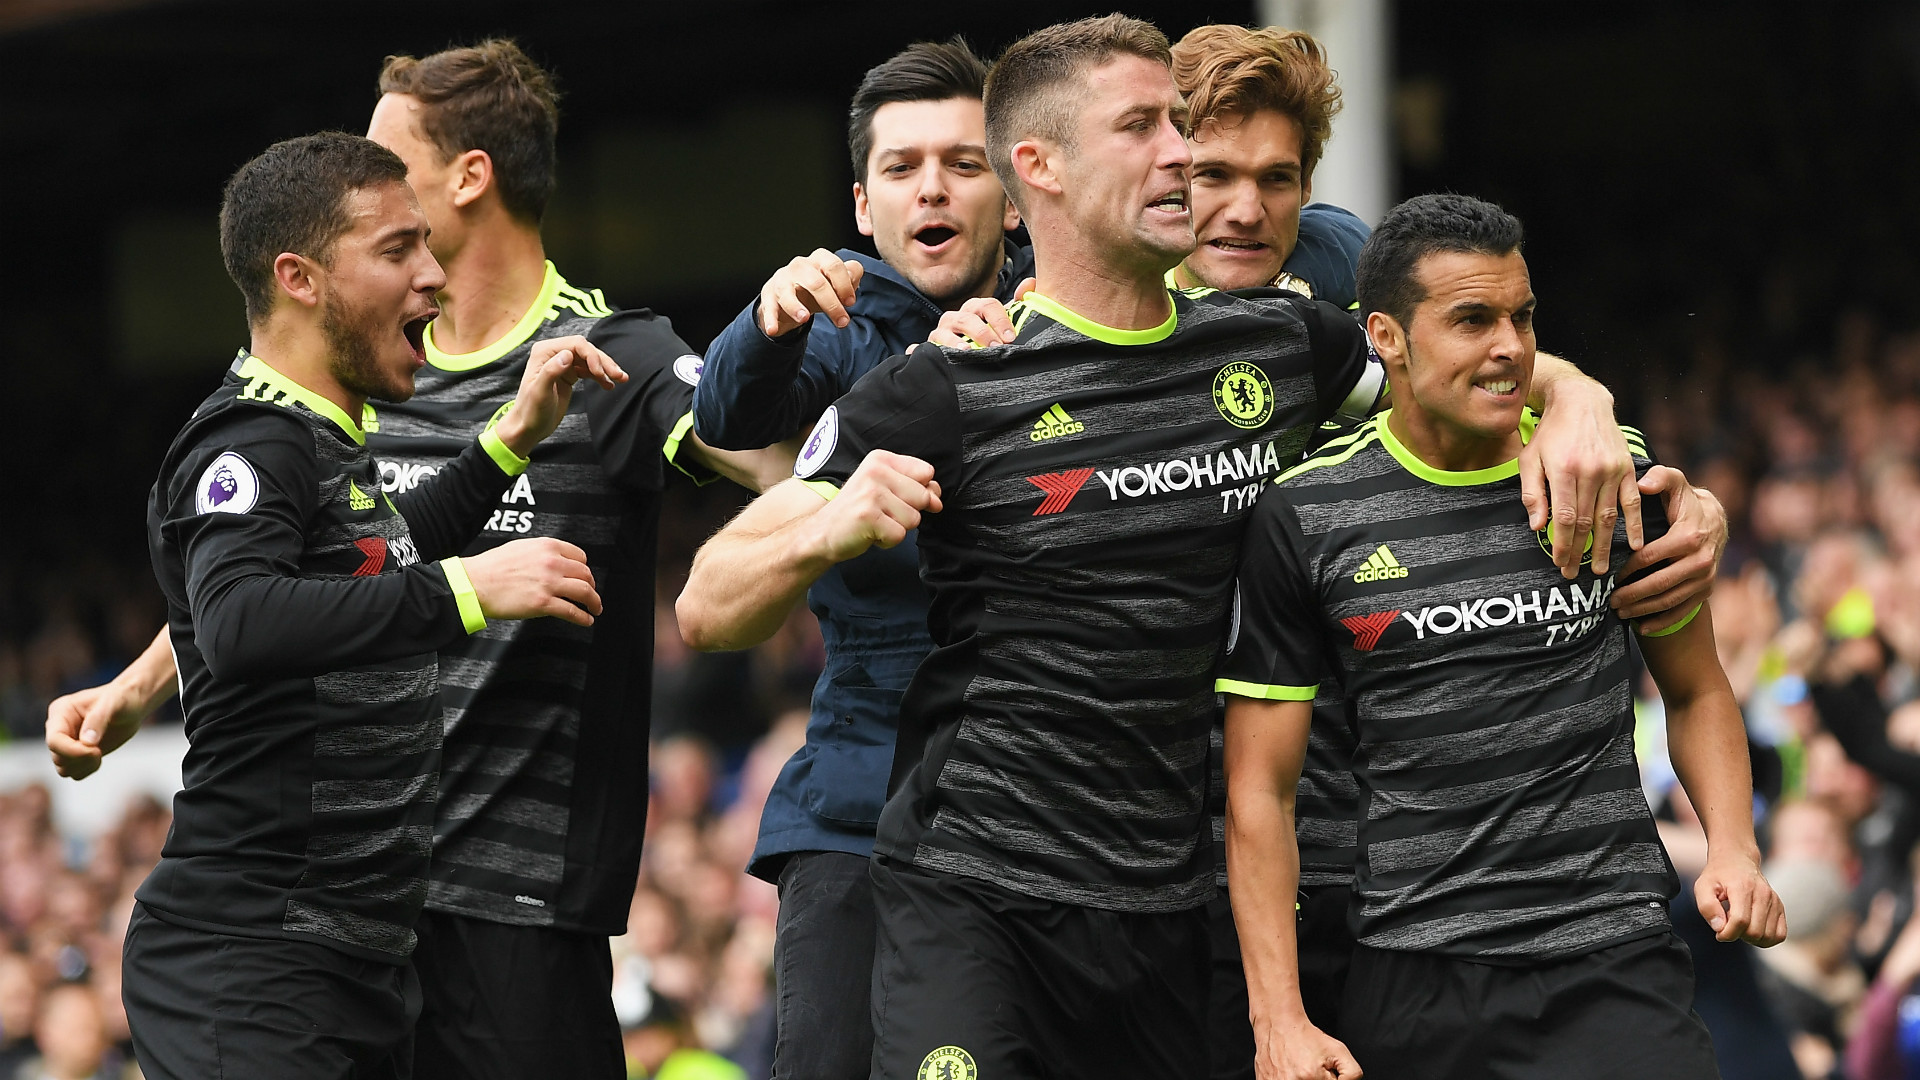 Photo of 5 Key Players Who Played Pivotal Roles in Chelsea's Premier League Title Win